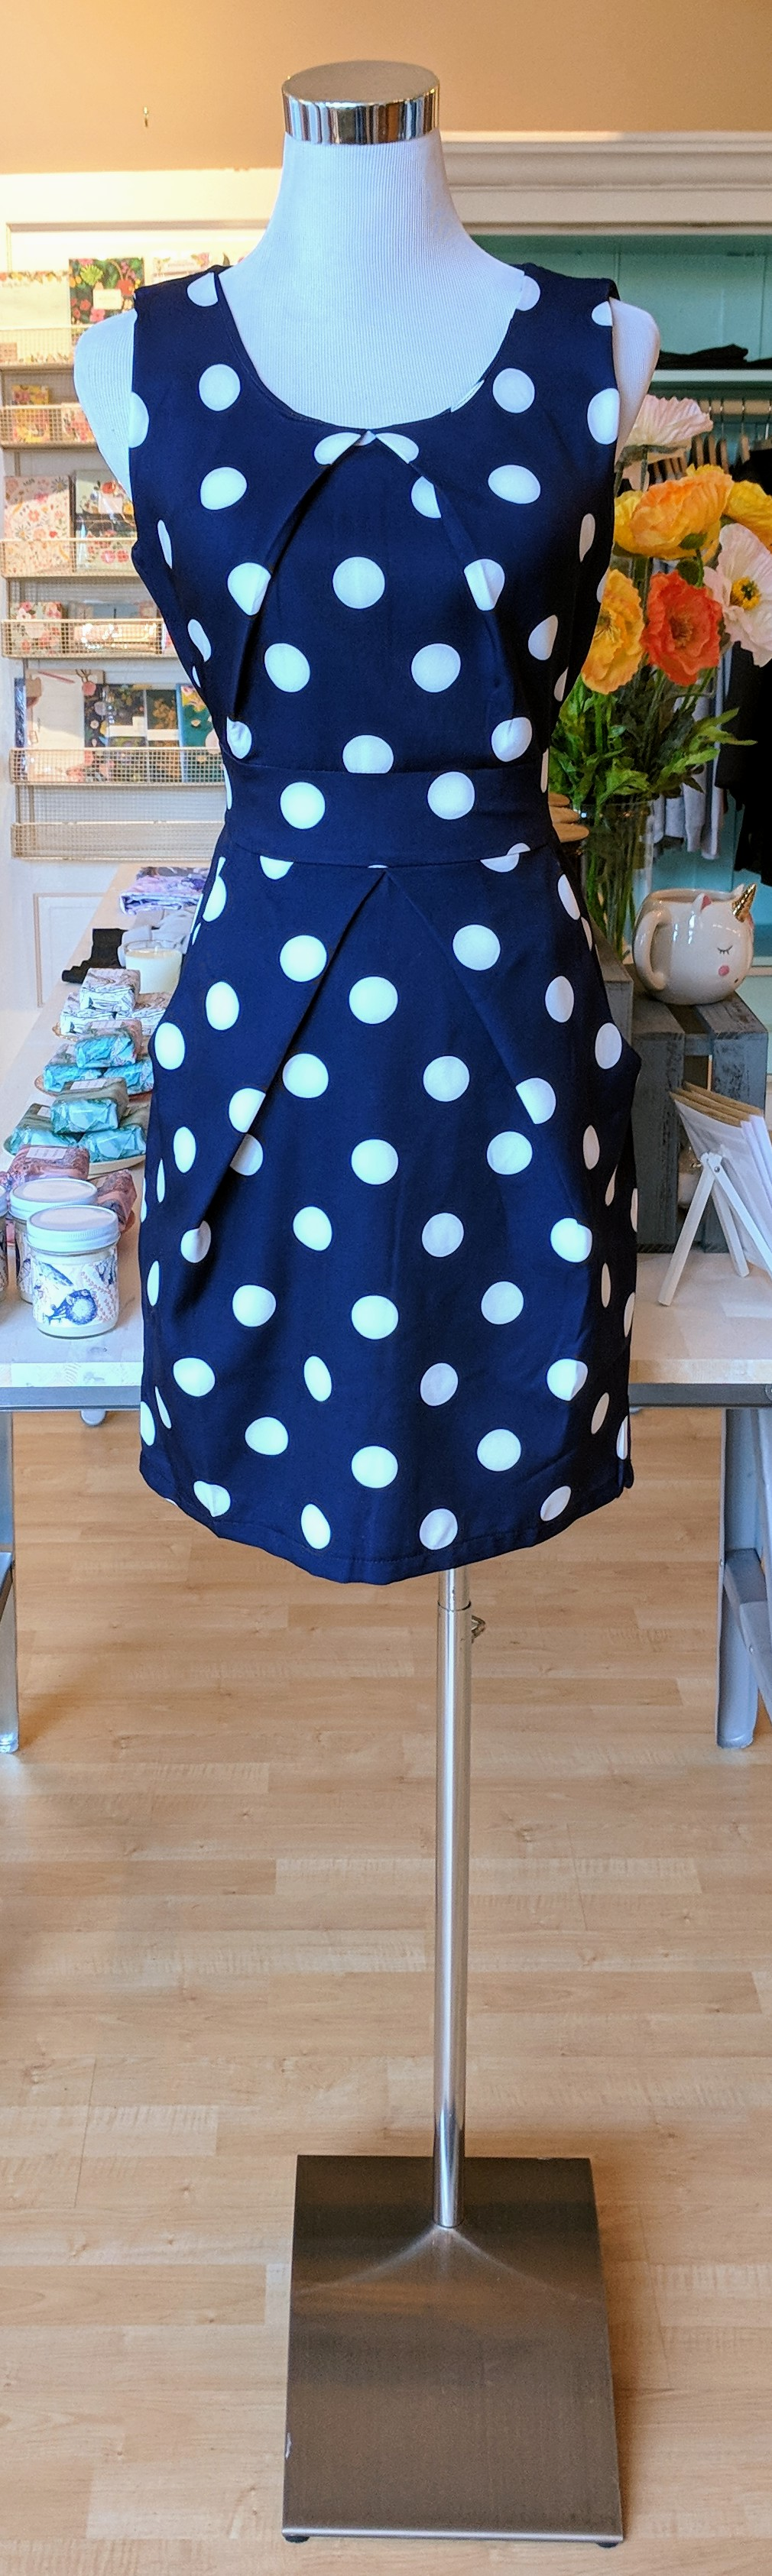 Navy polka dot sleeveless dress with pockets.